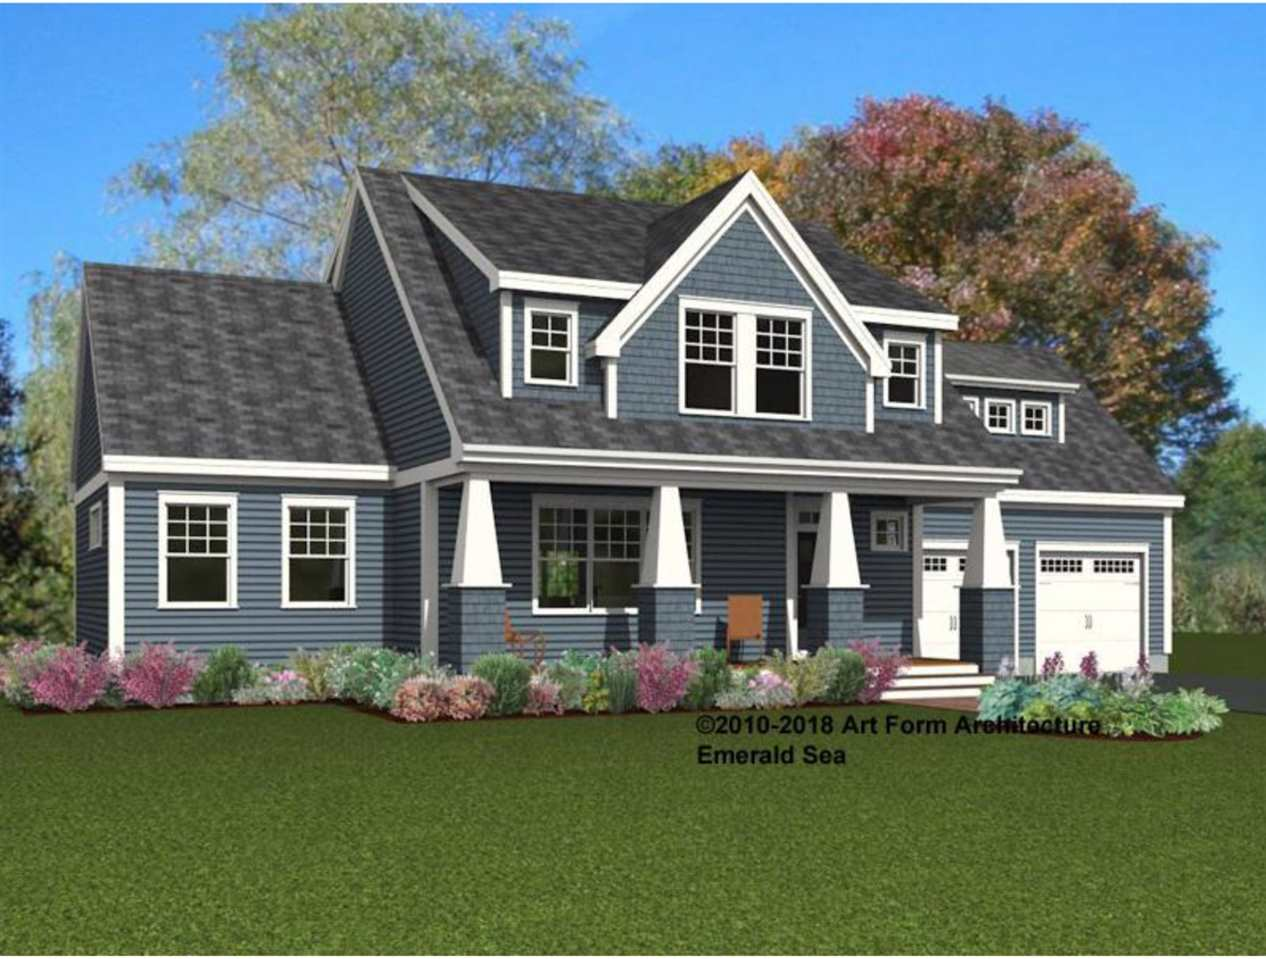 MLS 4783427: Lot 16 12 Whiting Farm Drive, Amherst NH